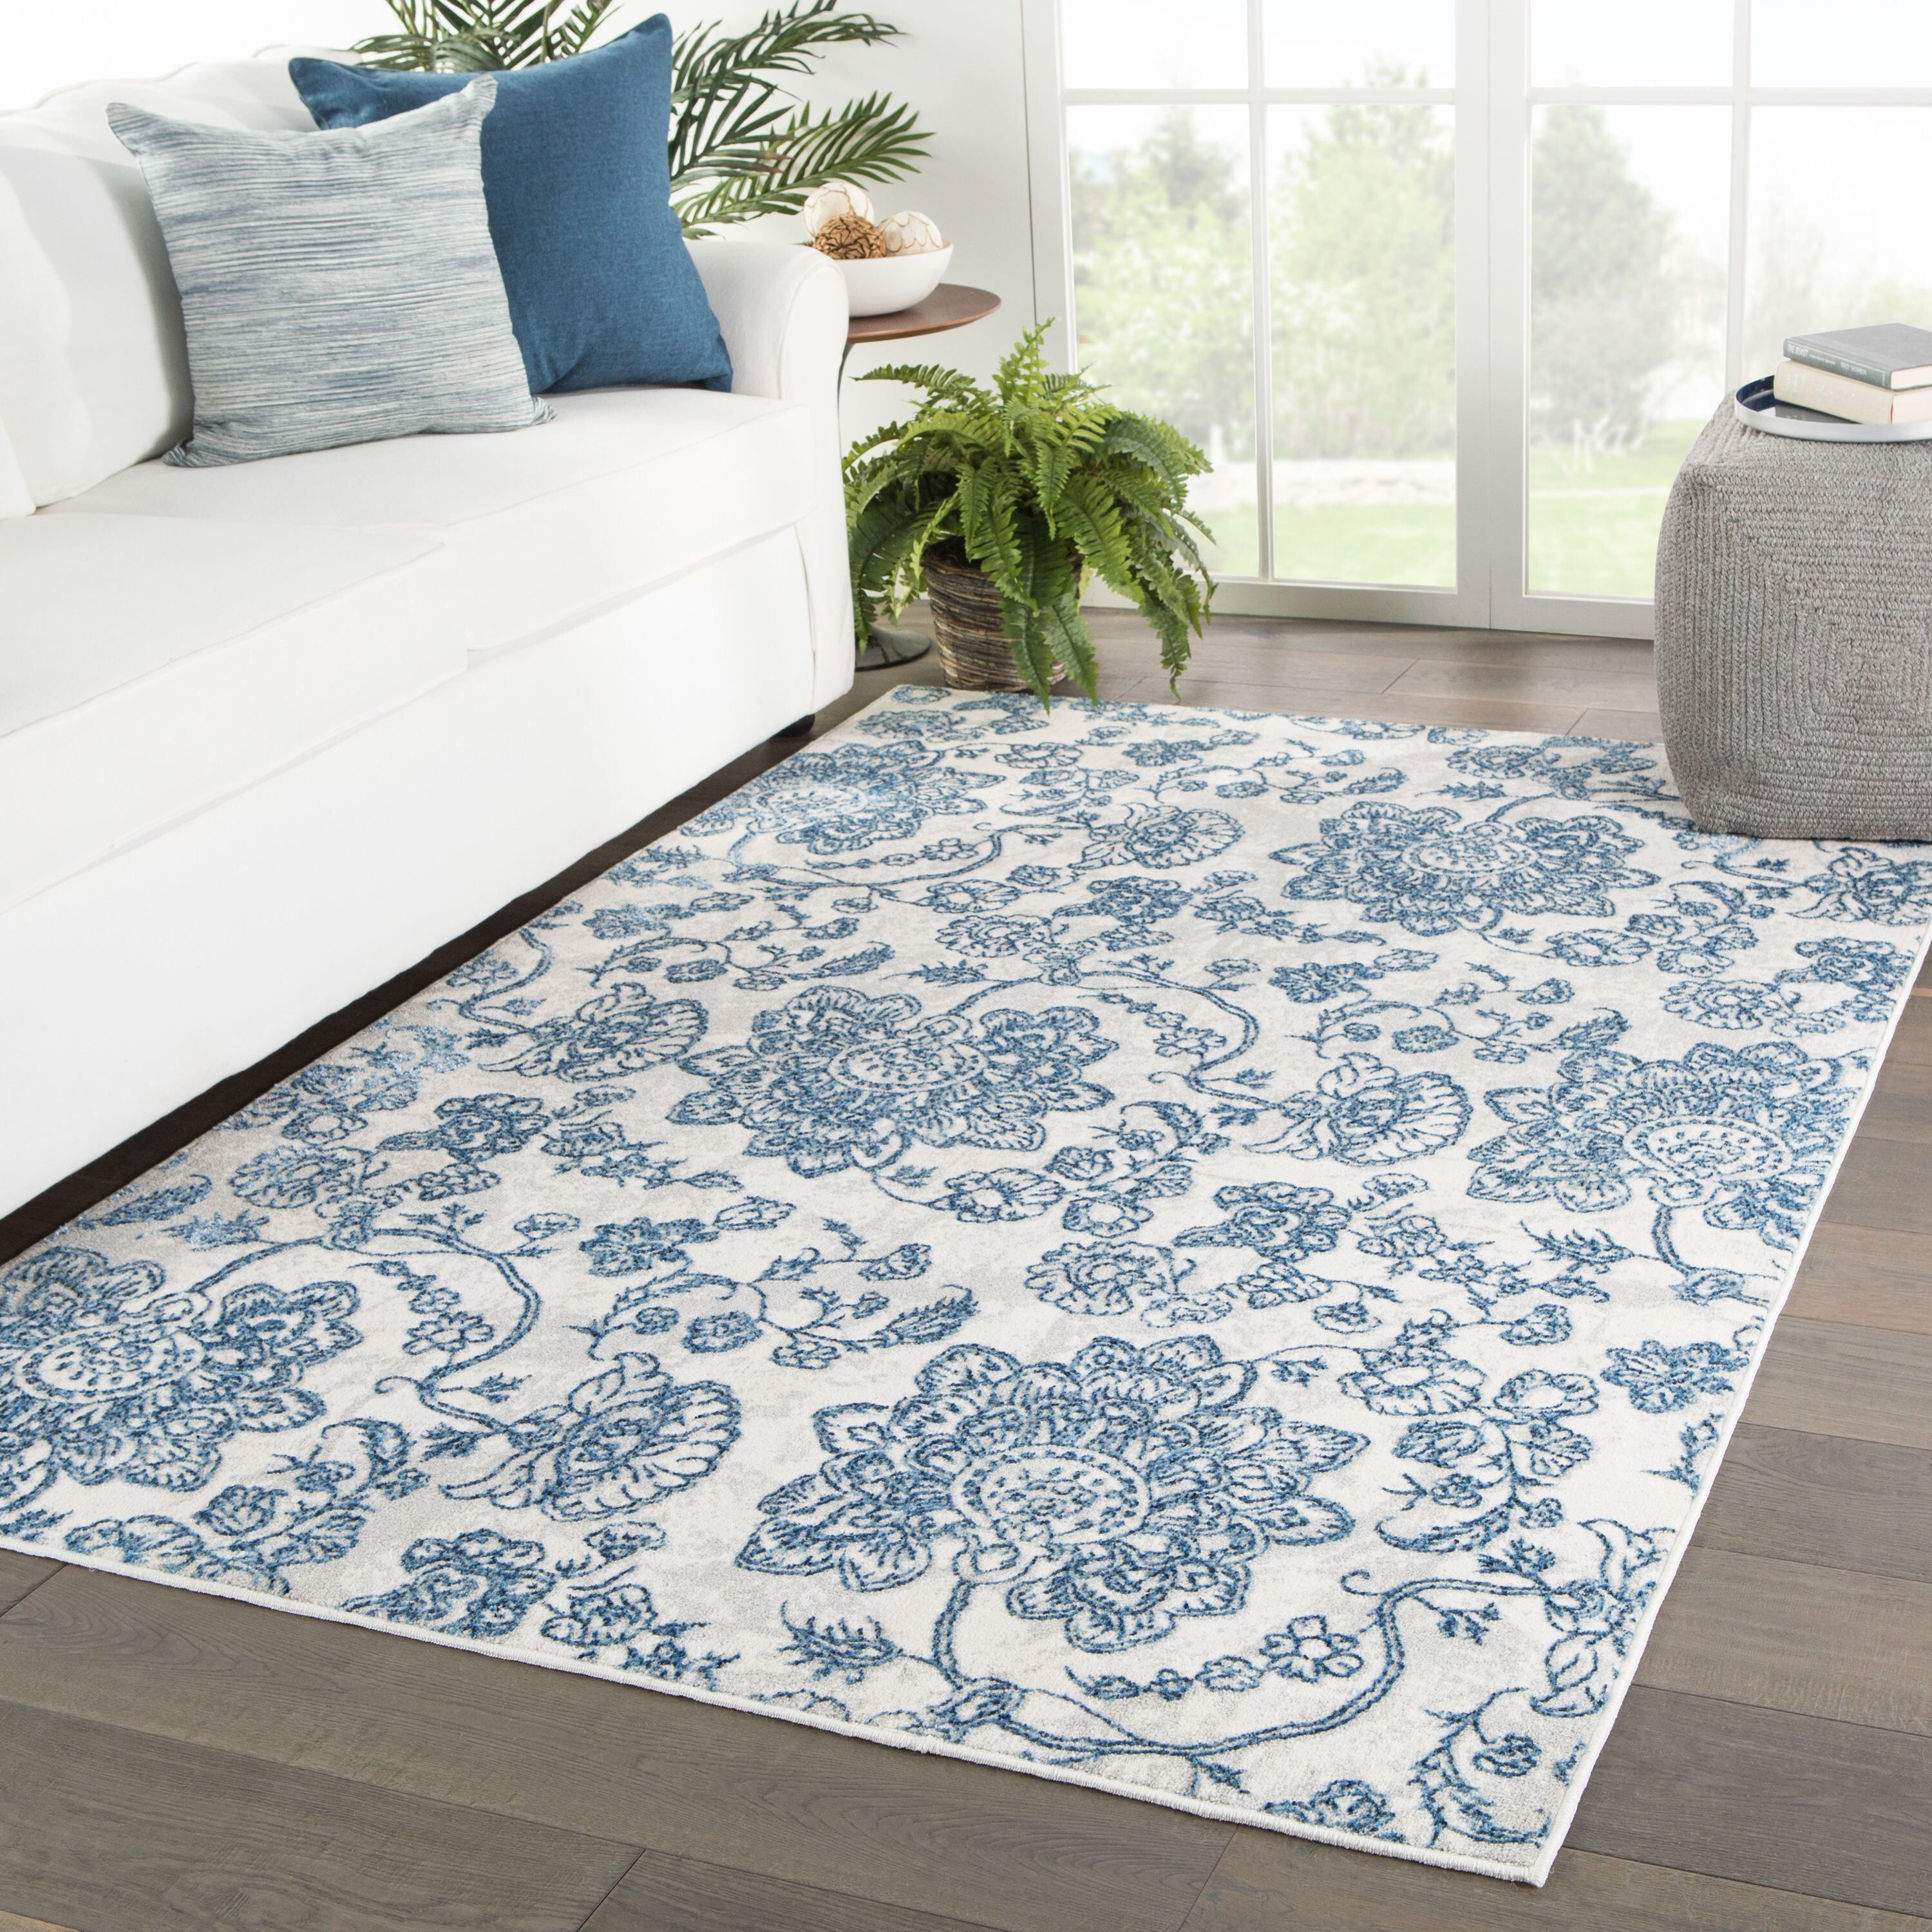 Funderburk Paisley Blue Light Gray Area Rug Grey Area Rug Light Grey Area Rug Area Rugs